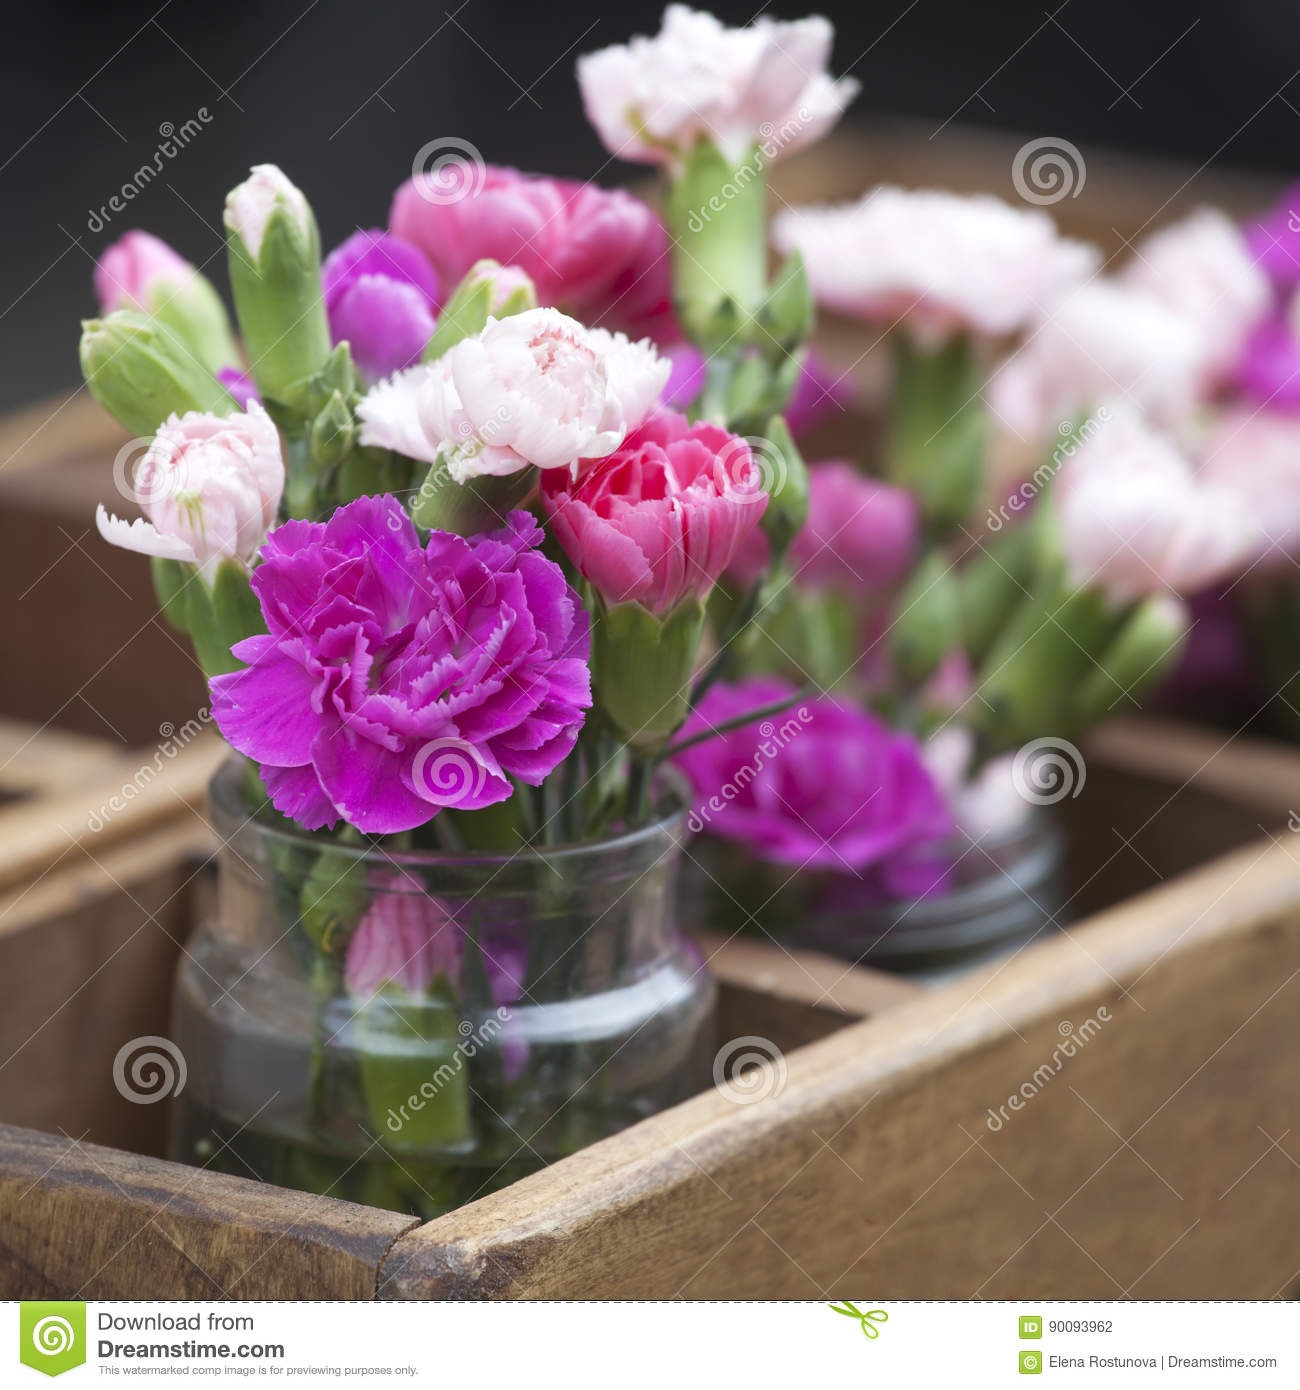 the small bouquets of pink and white carnations in a wooden box